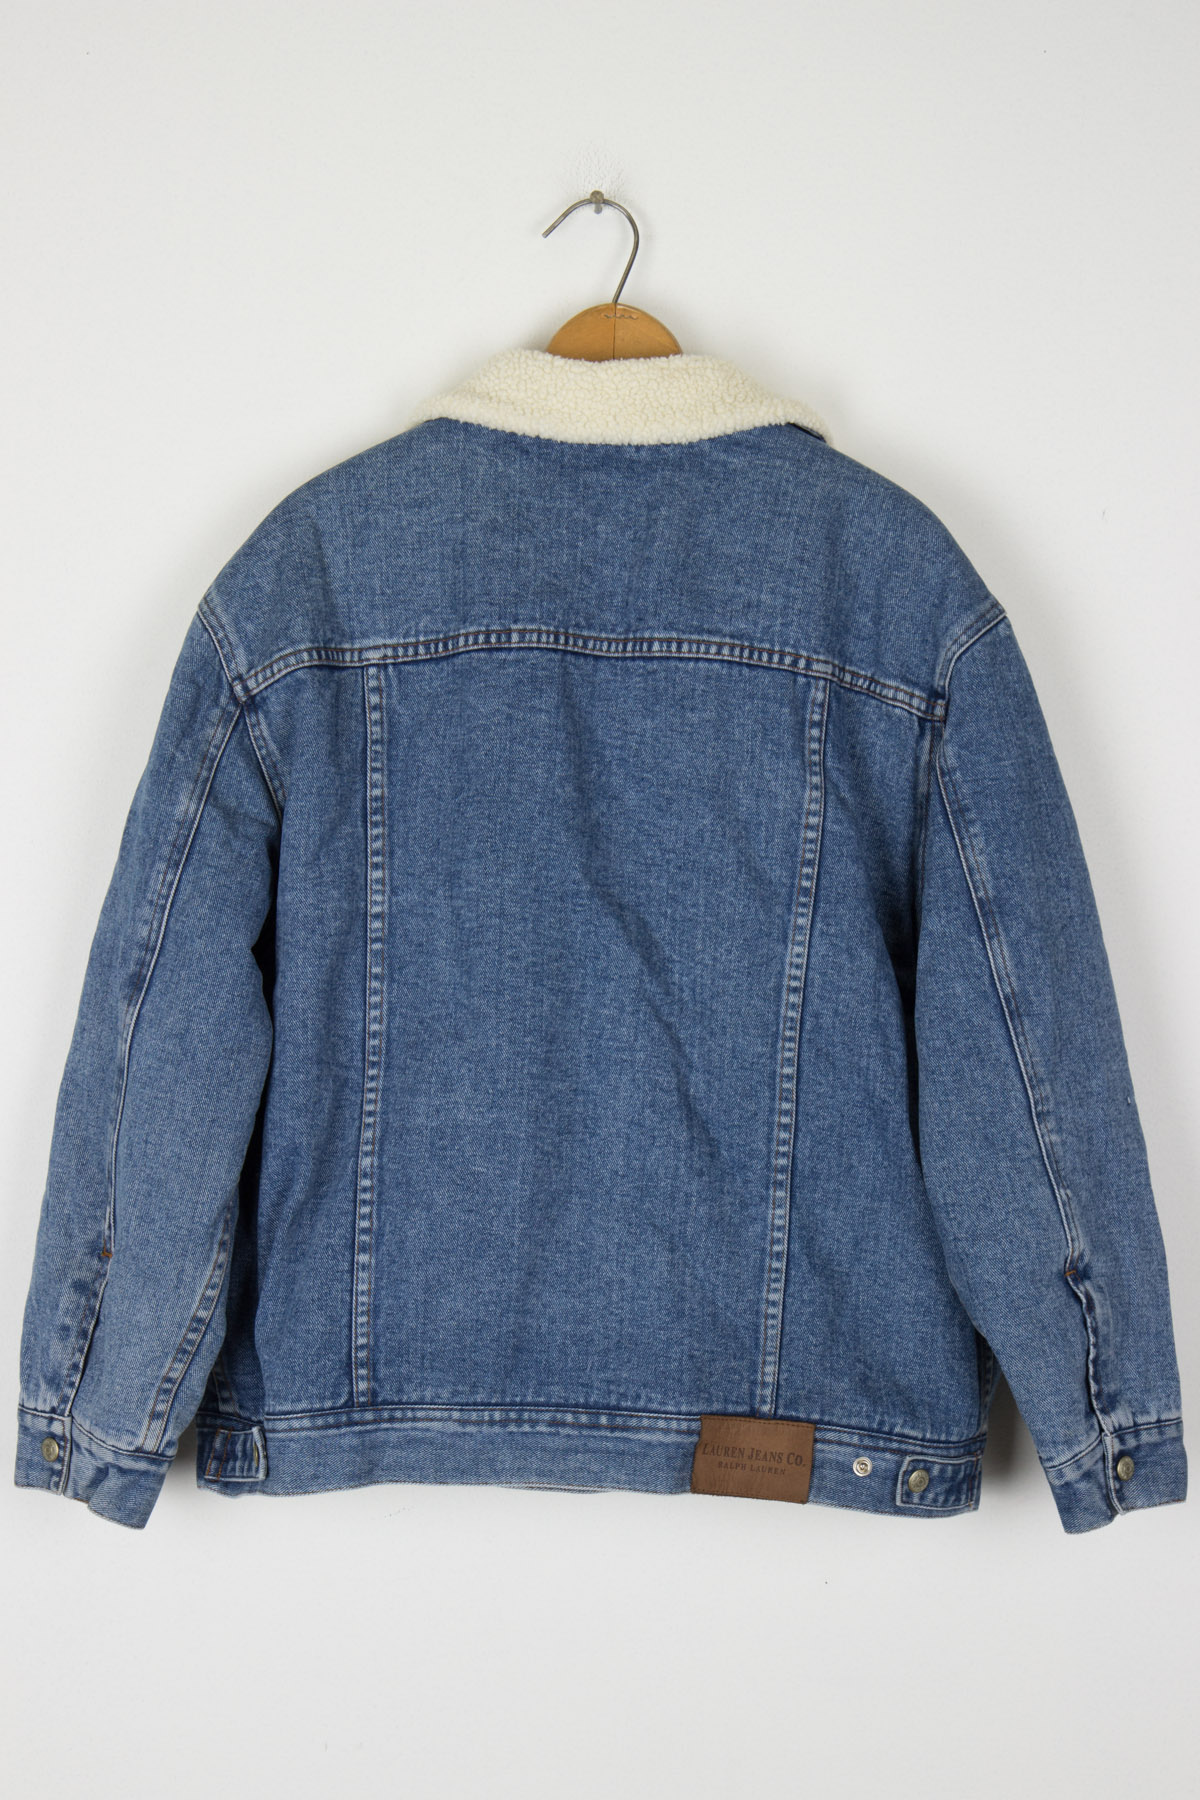 Ralph Lauren Lined Denim Jacket